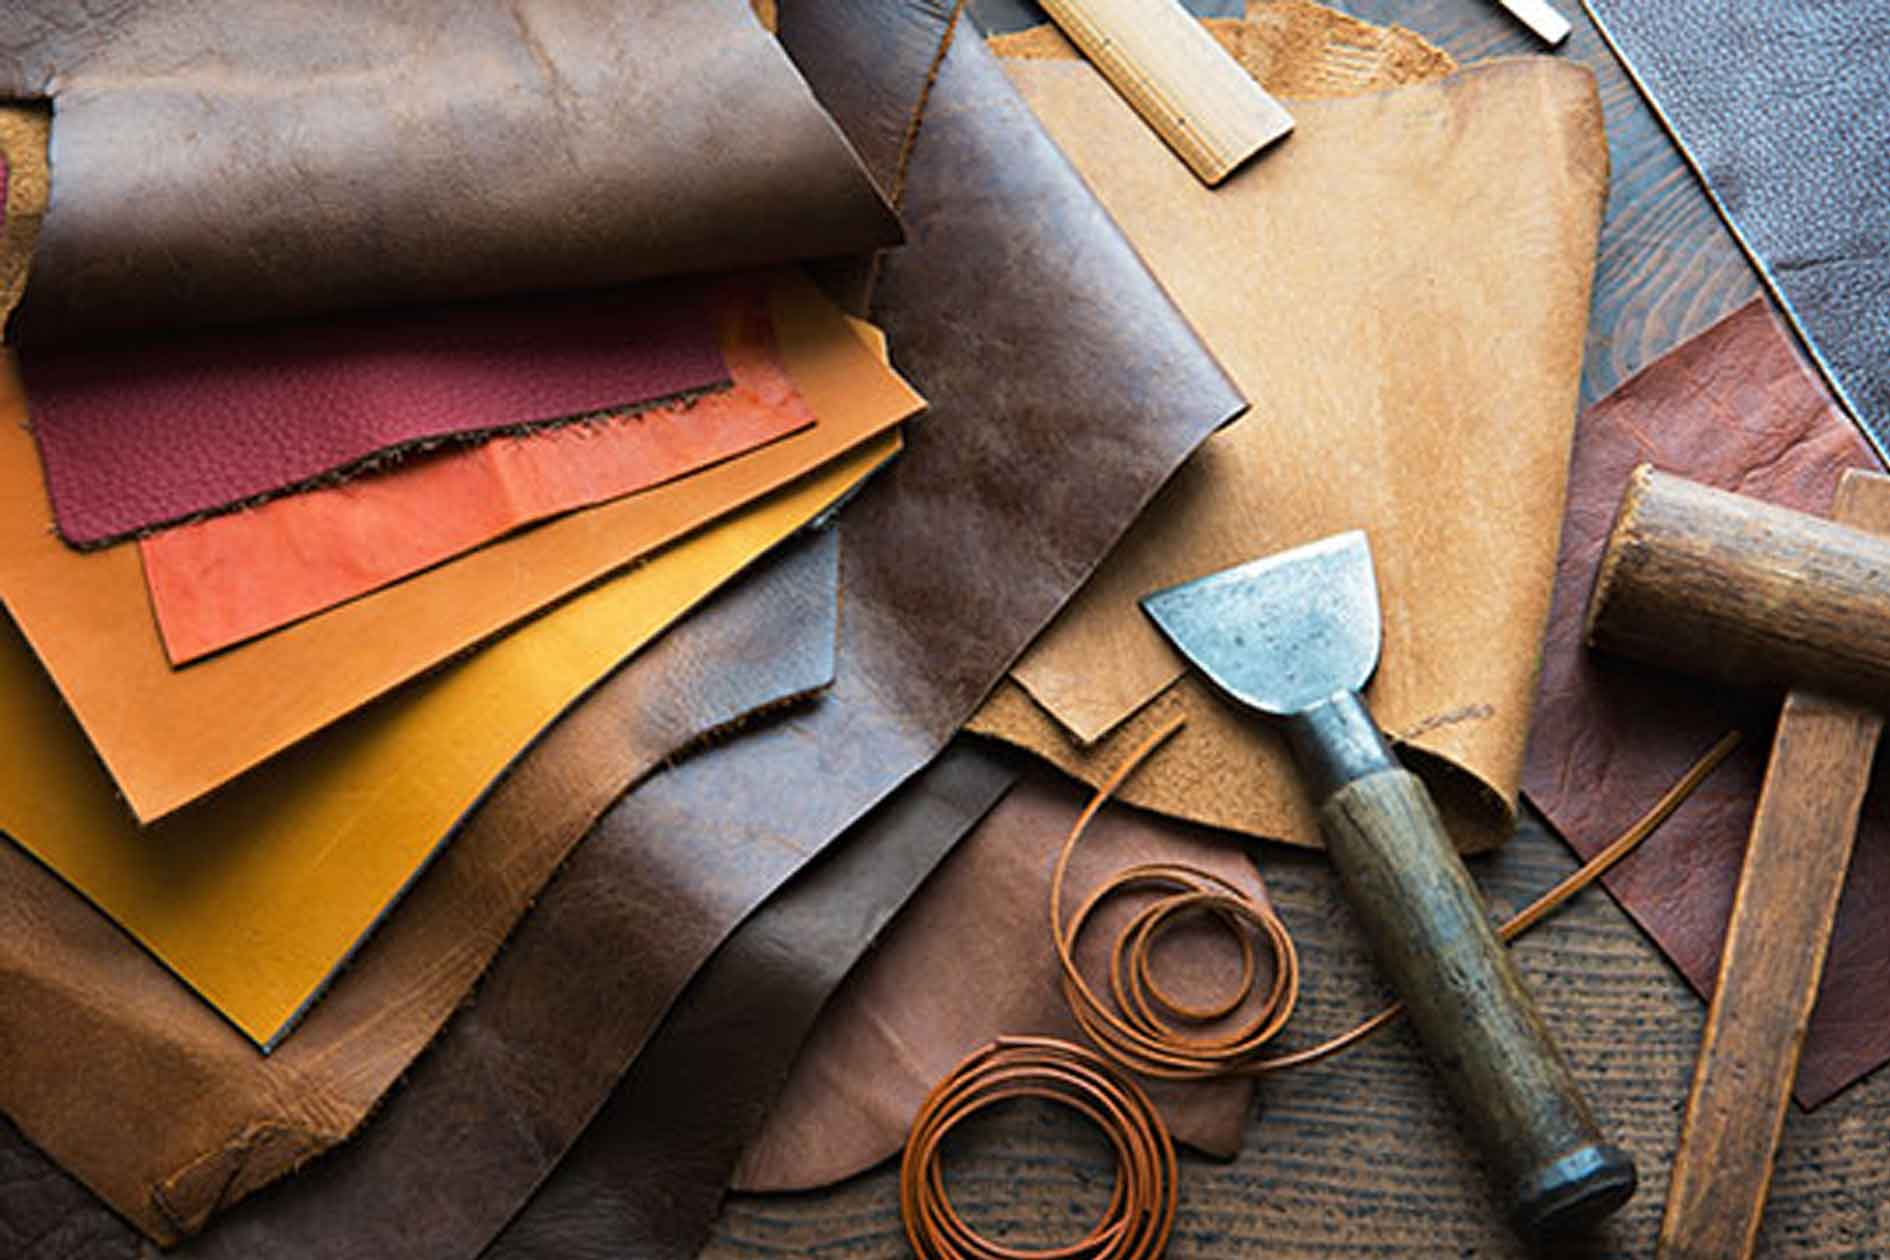 leathercrafting tools 2021 guide to leather making